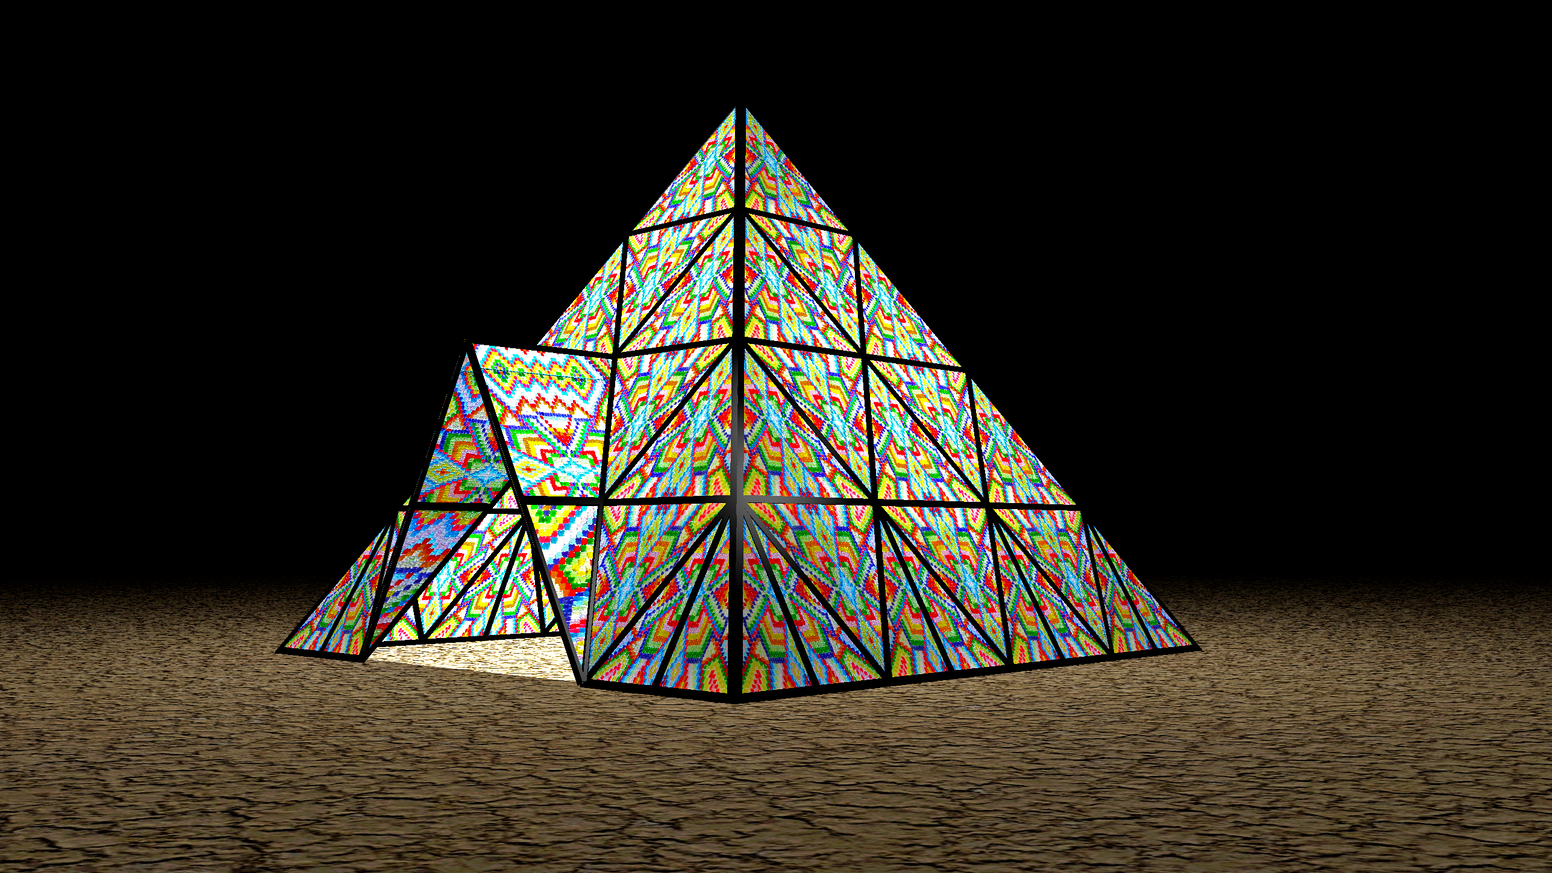 Gummy Bear Pyramid Art Installation Burning Man 2017 by